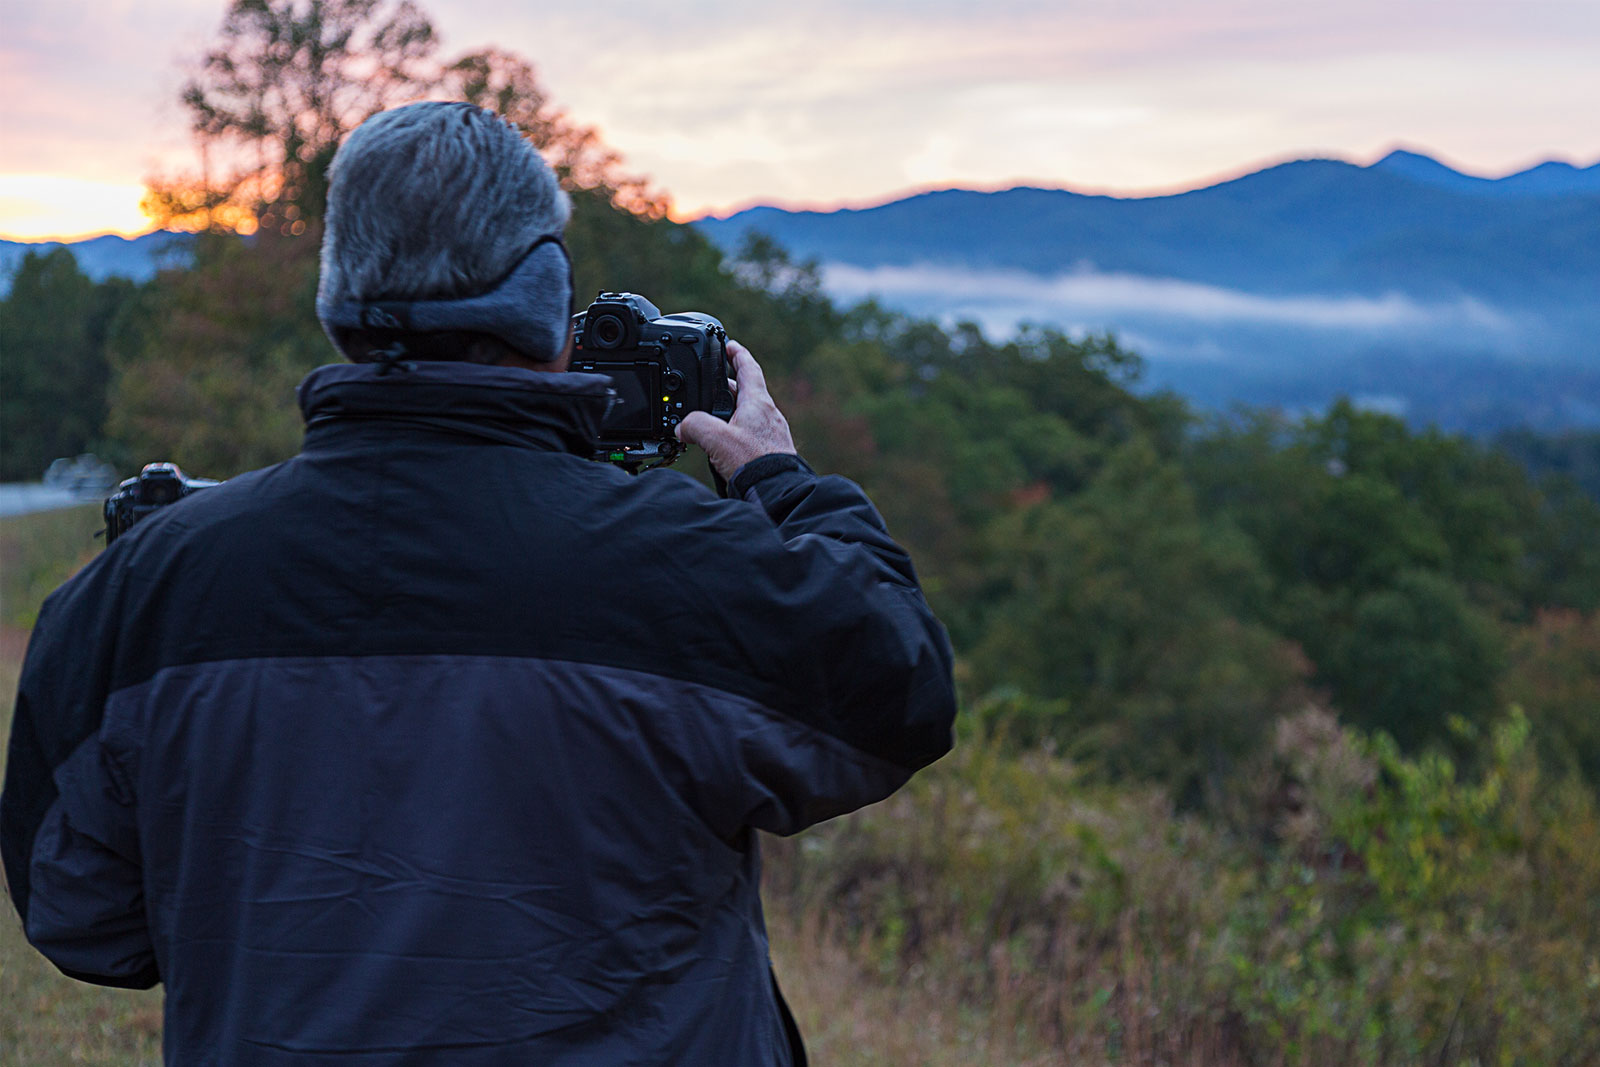 A workshop participant takes photos of the Smoky Mountains